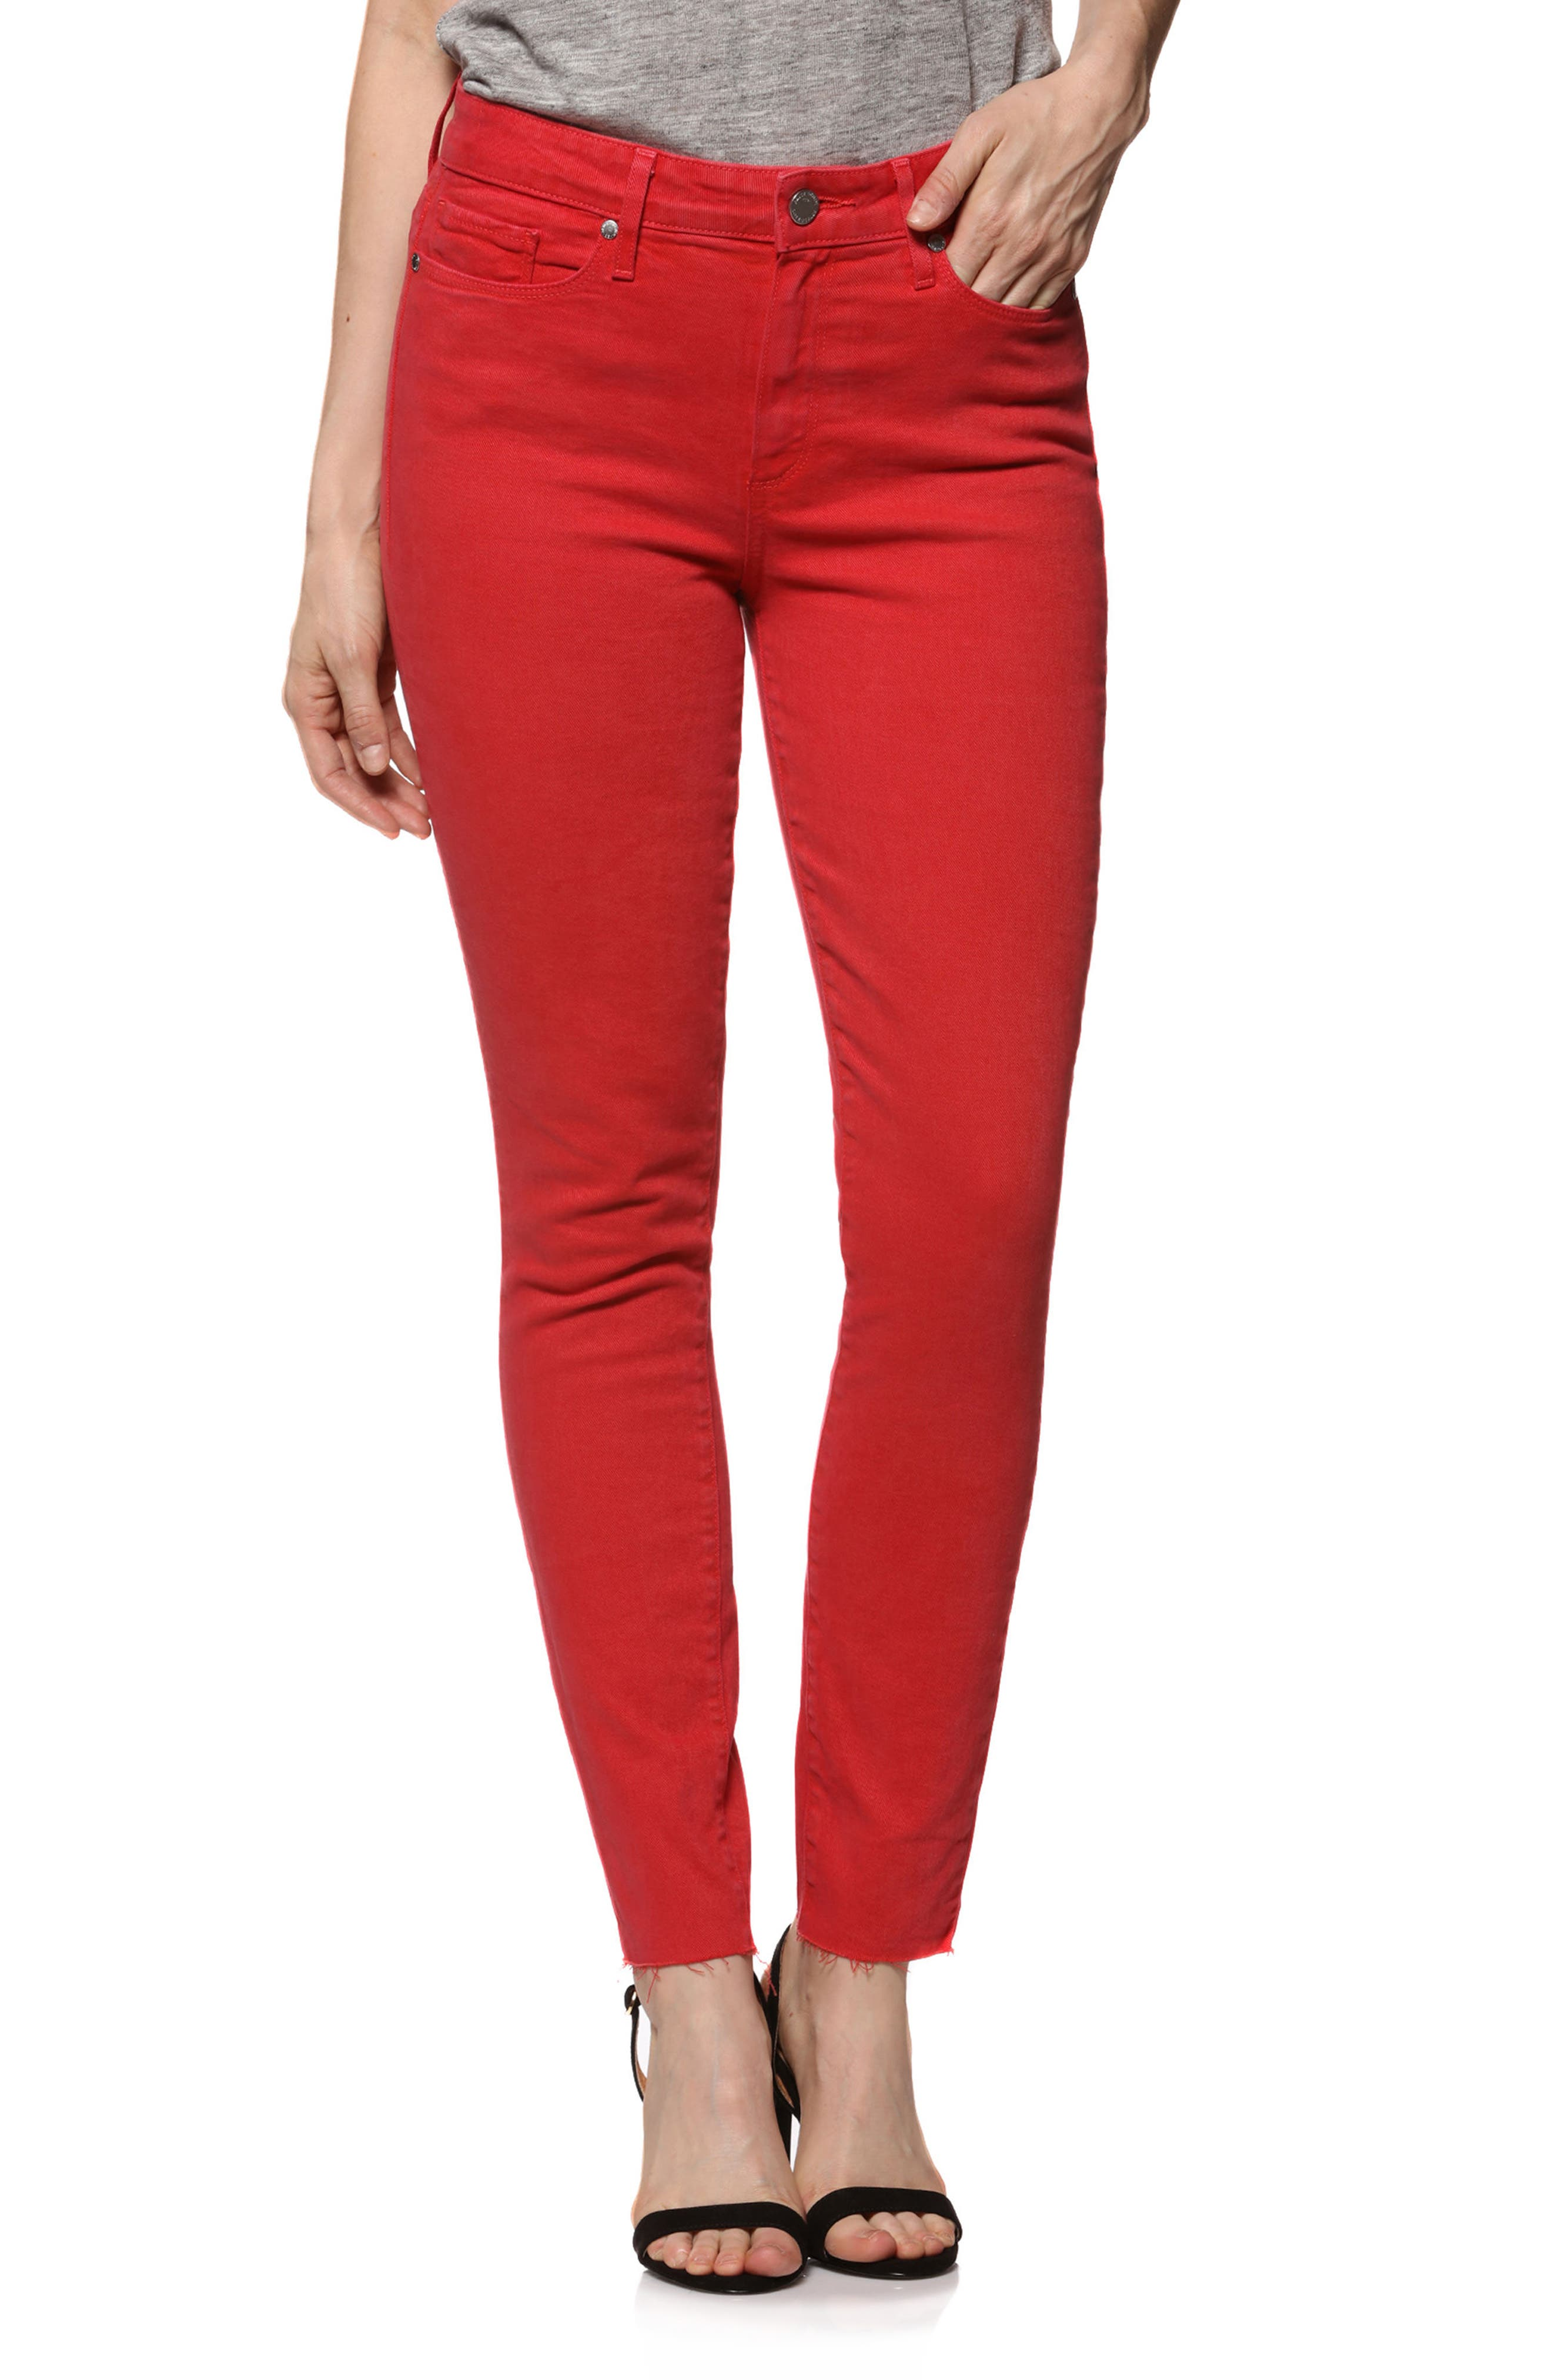 Hoxton High Waist Ankle Skinny Jeans,                         Main,                         color, 649